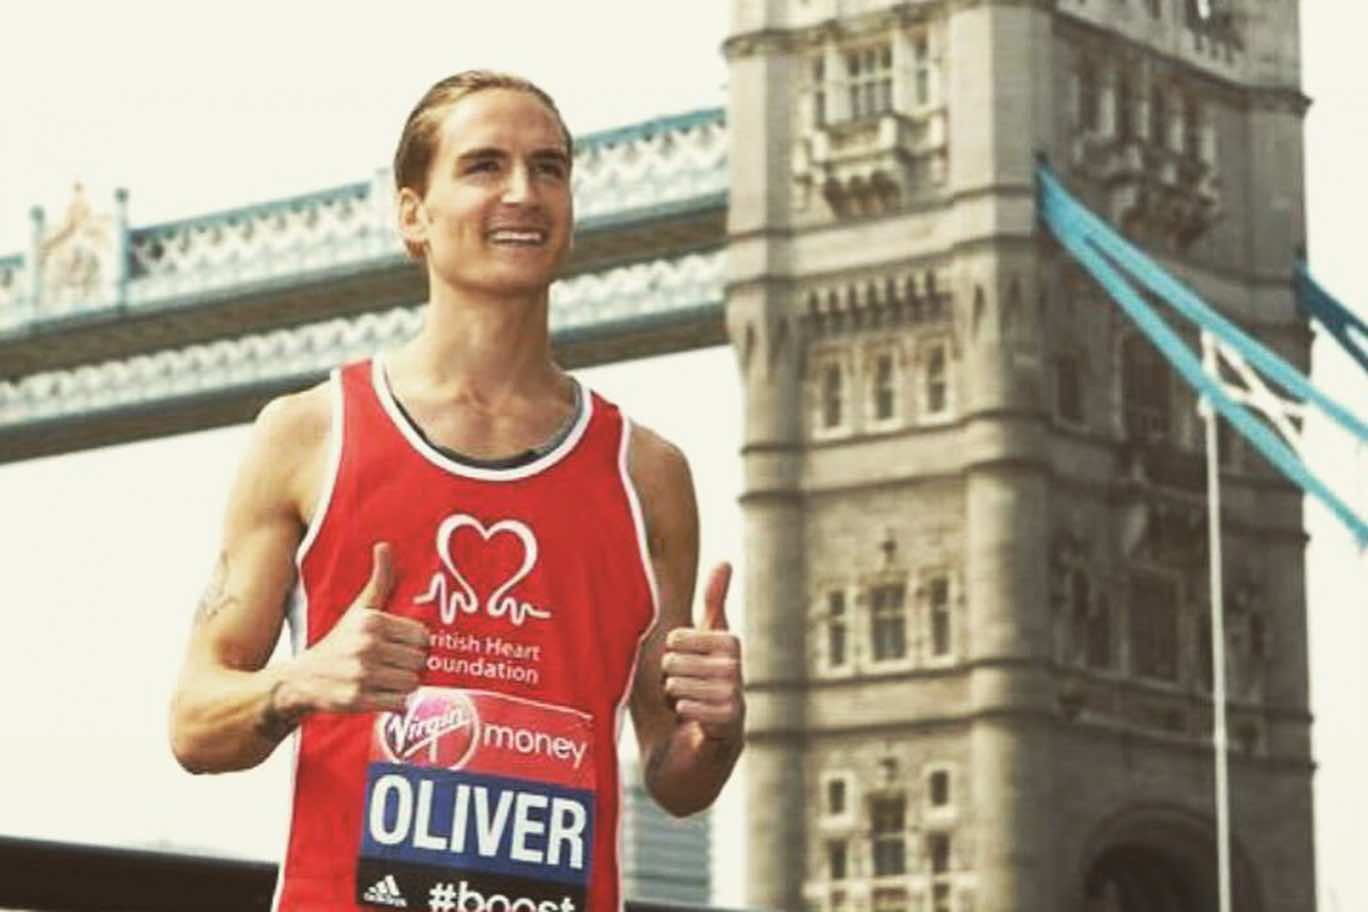 Oliver Proudlock reviews Hot Bikram Yoga to aid his post-marathon recovery